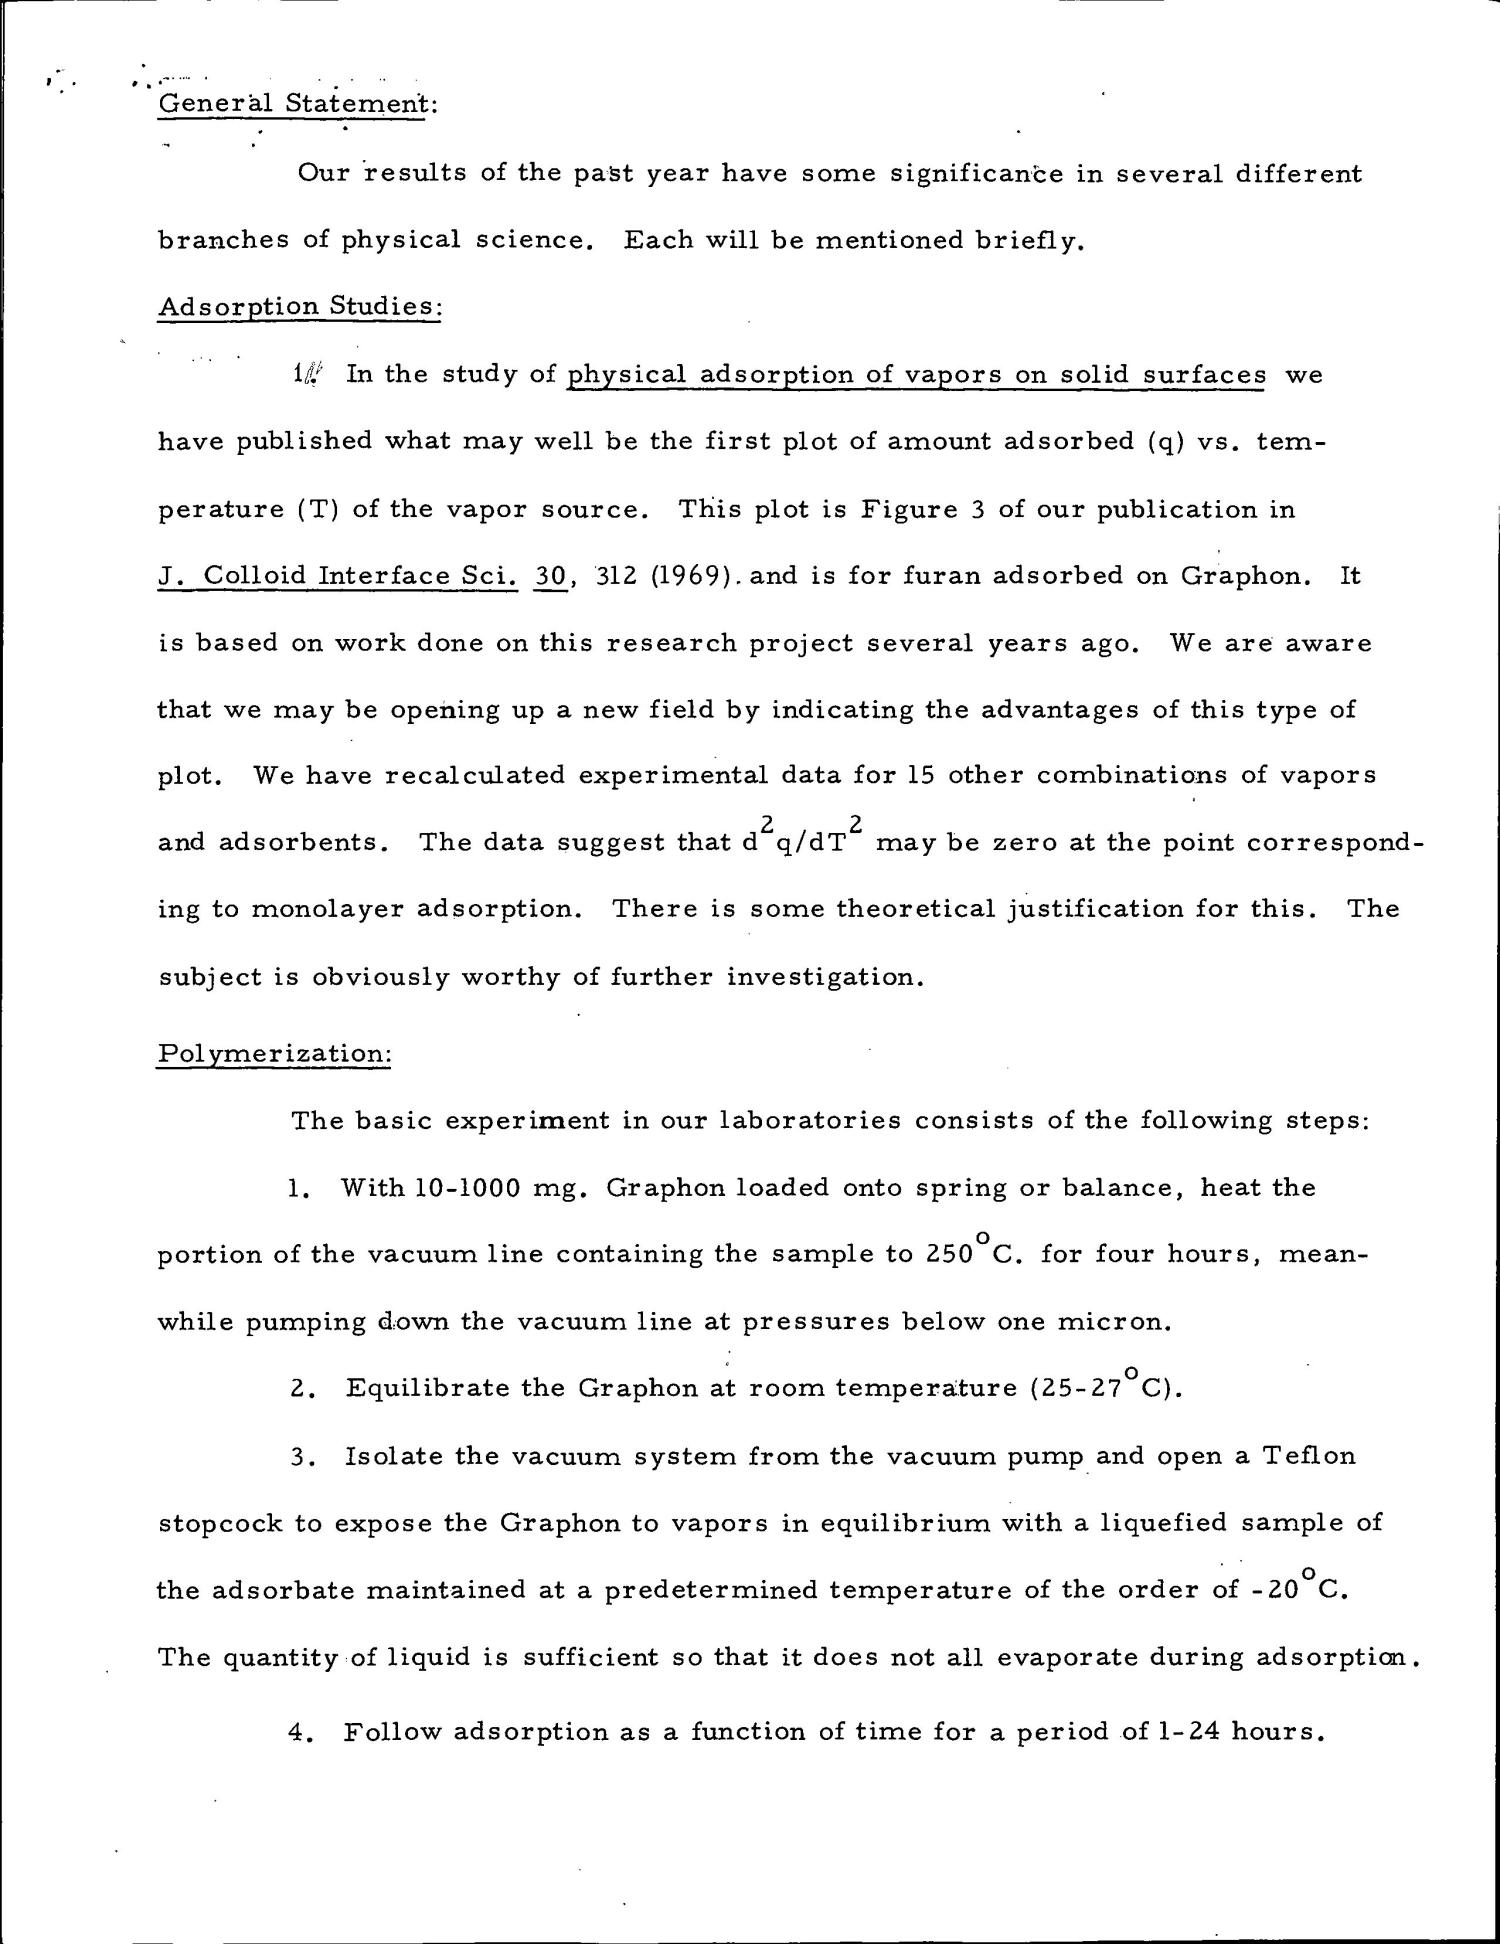 CONTROLLED POLYMERIZATION OF ADSORBED MONOMERS. Technical Progress Report.                                                                                                      [Sequence #]: 4 of 15